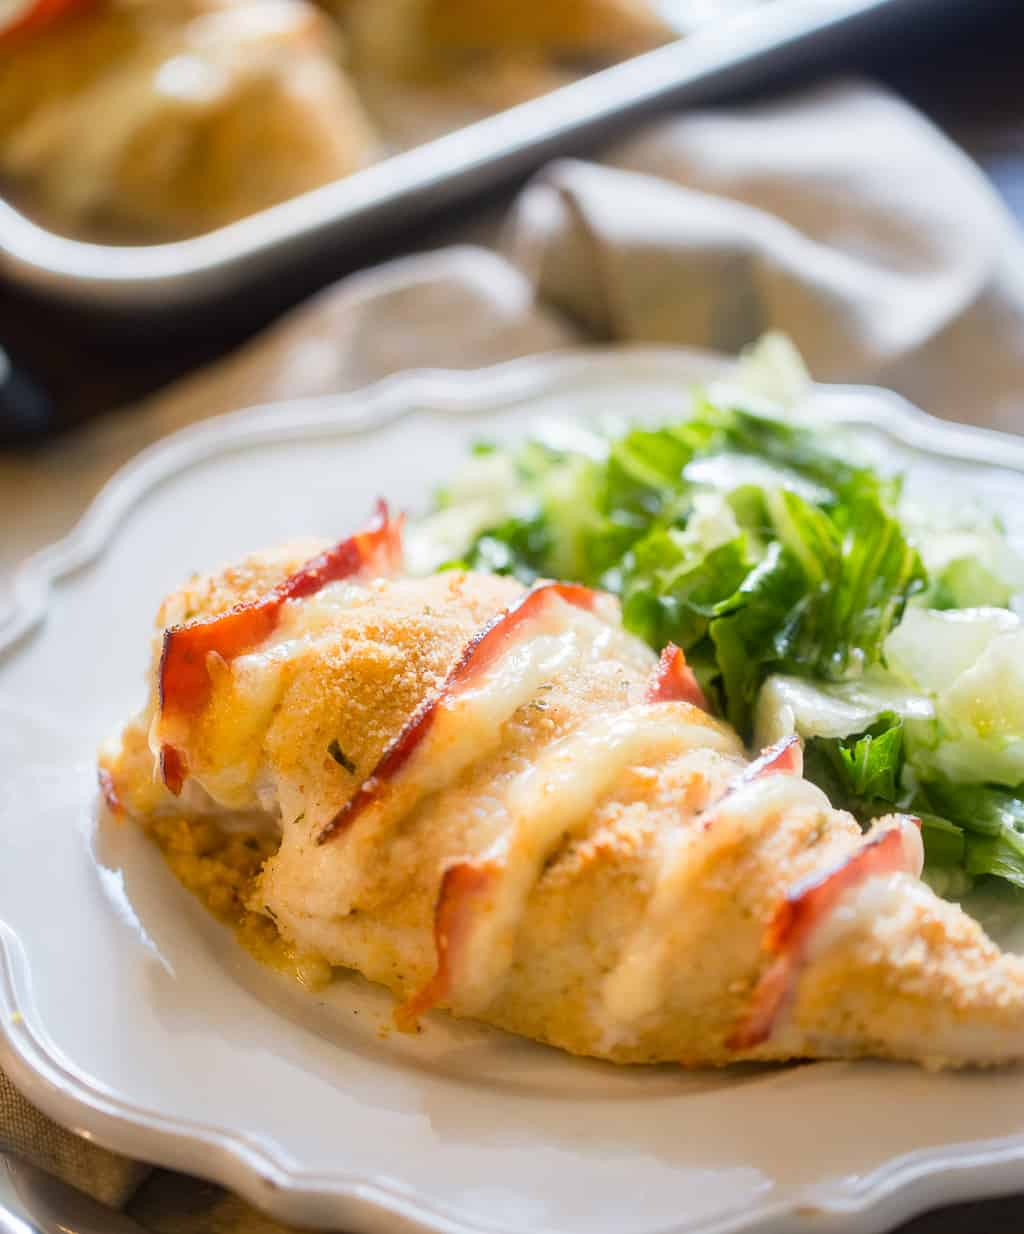 Baked Chicken Cordon Bleu on a plate with side salad